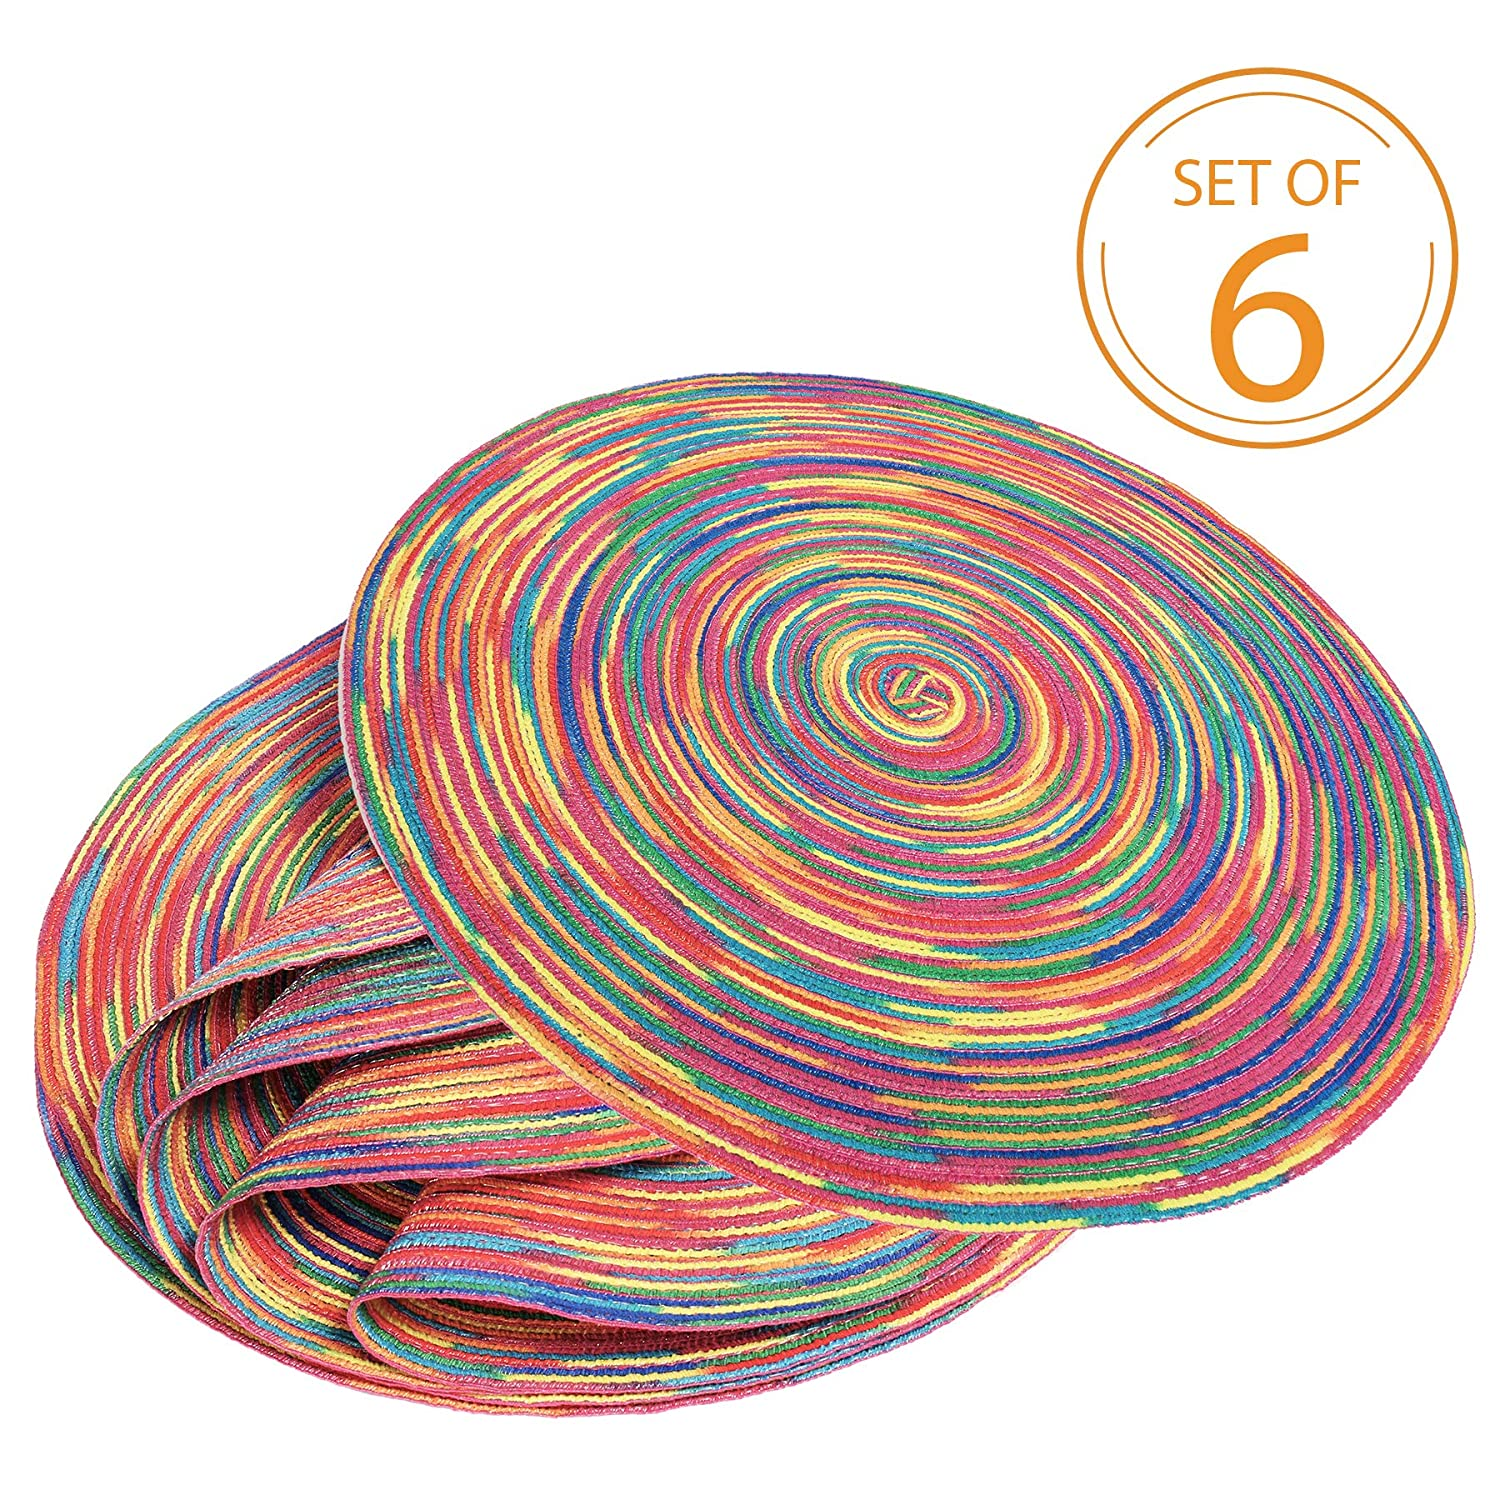 Braided Colorful Round Place mats for Kitchen Dining Table Runner Heat Insulation Non-Slip Washable Set of 6